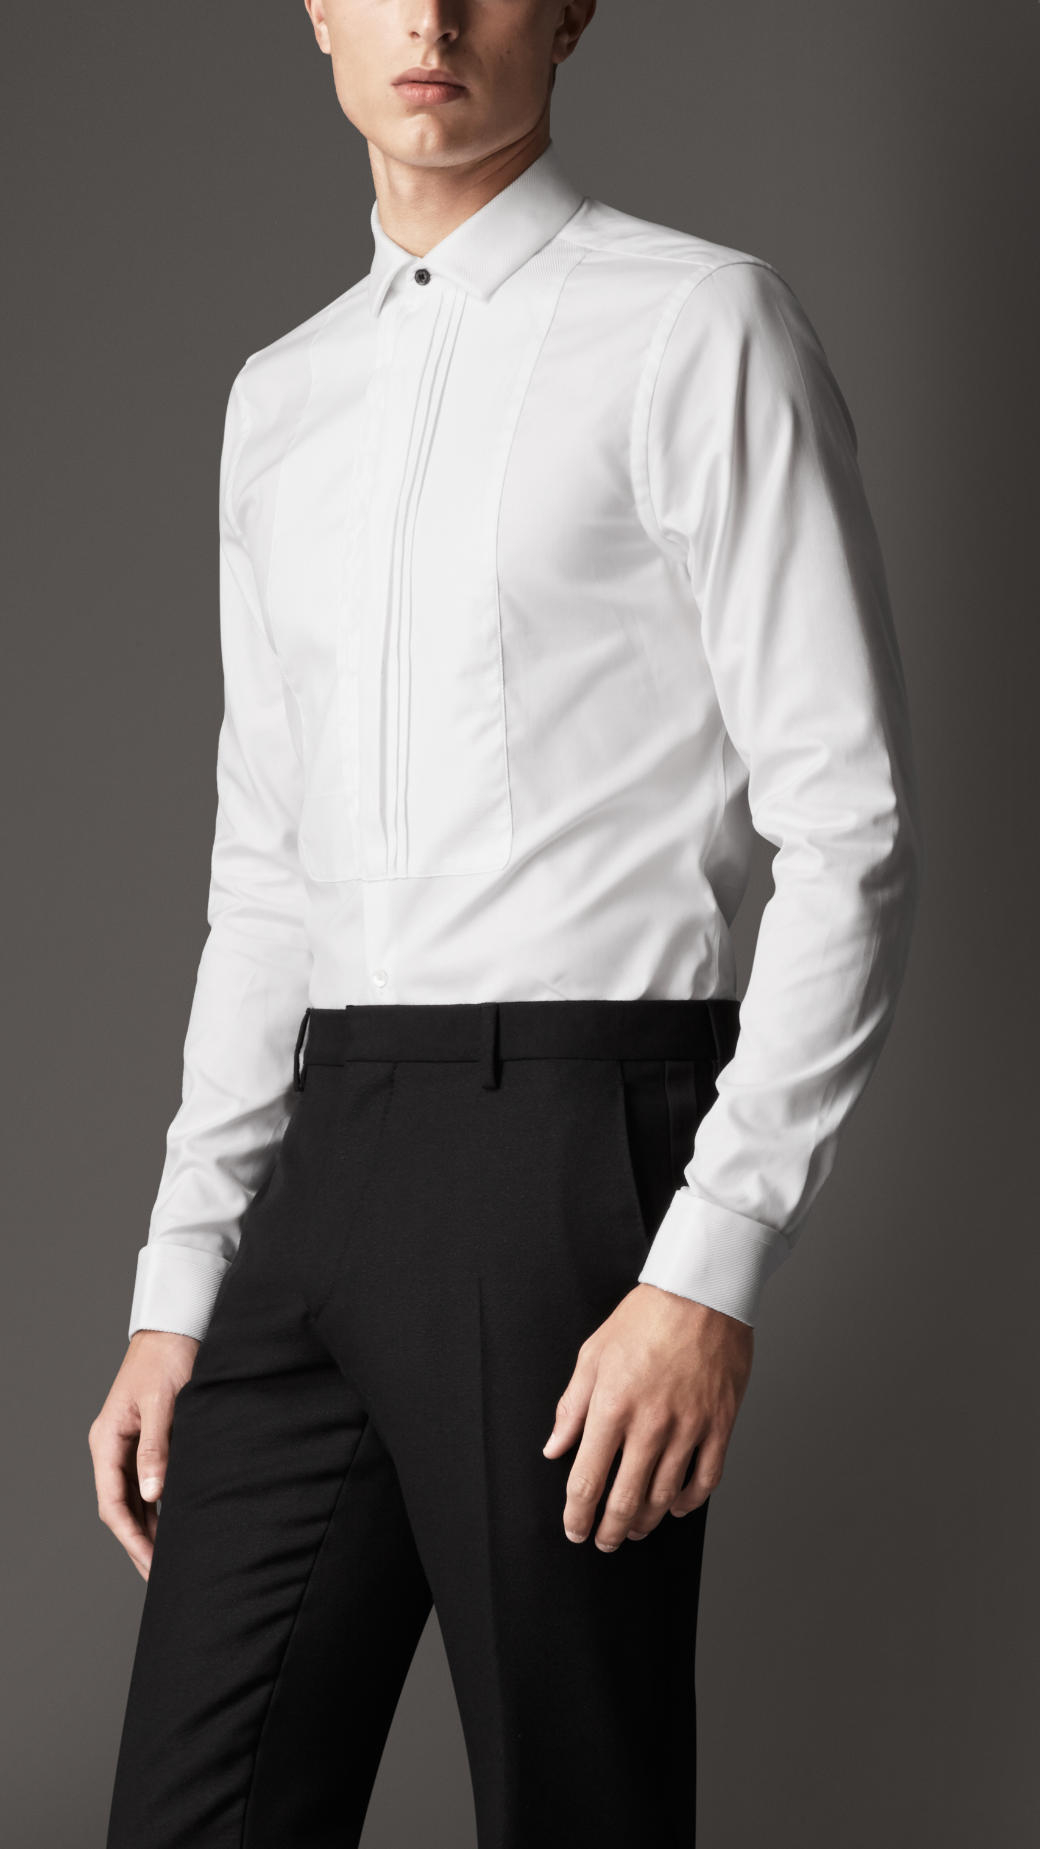 Lyst Burberry Slim Fit Cotton Dress Shirt In White For Men